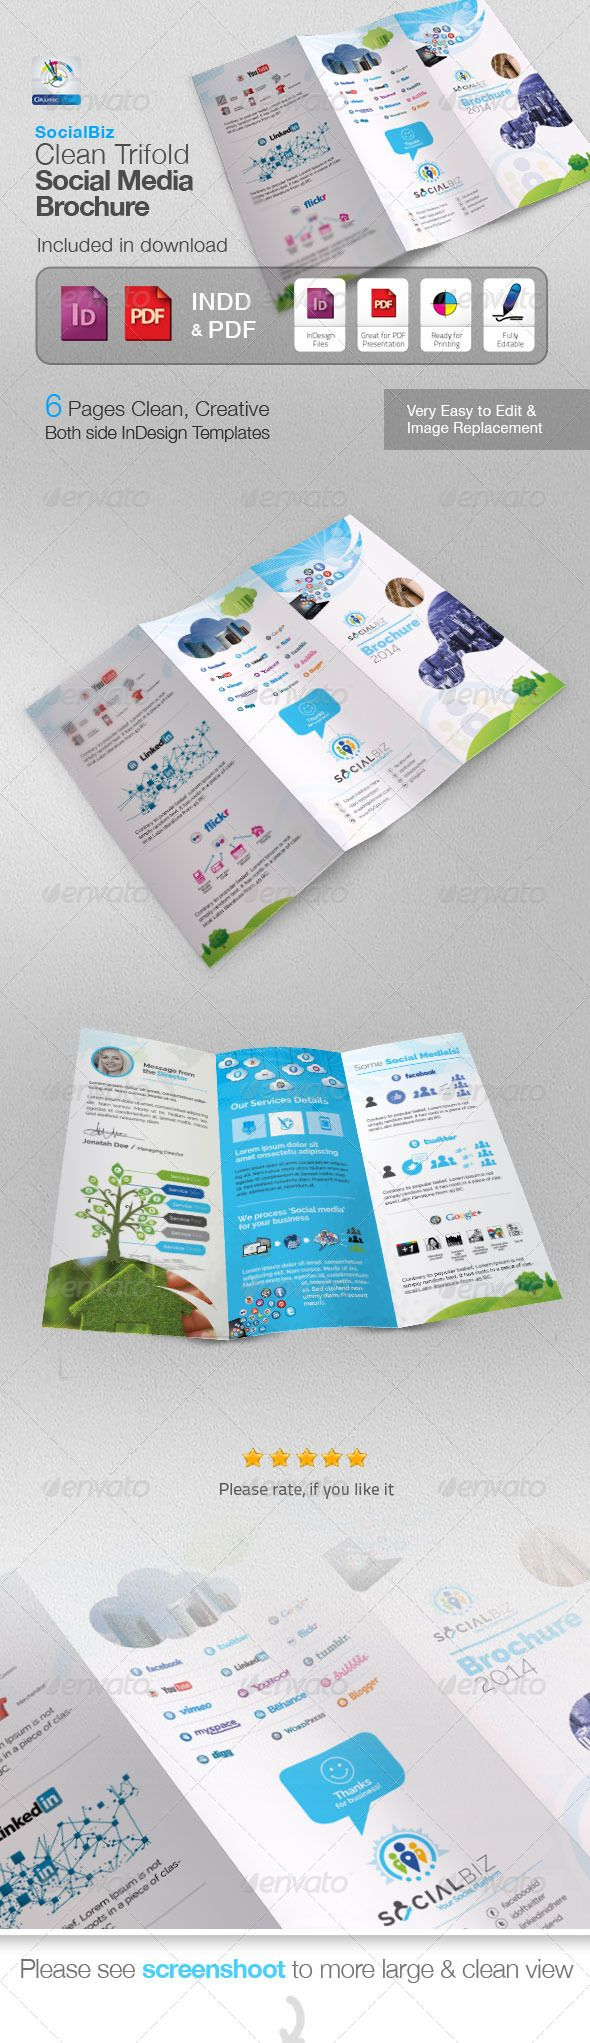 social media brochure template - 561 best images about logos lighthouse on pinterest